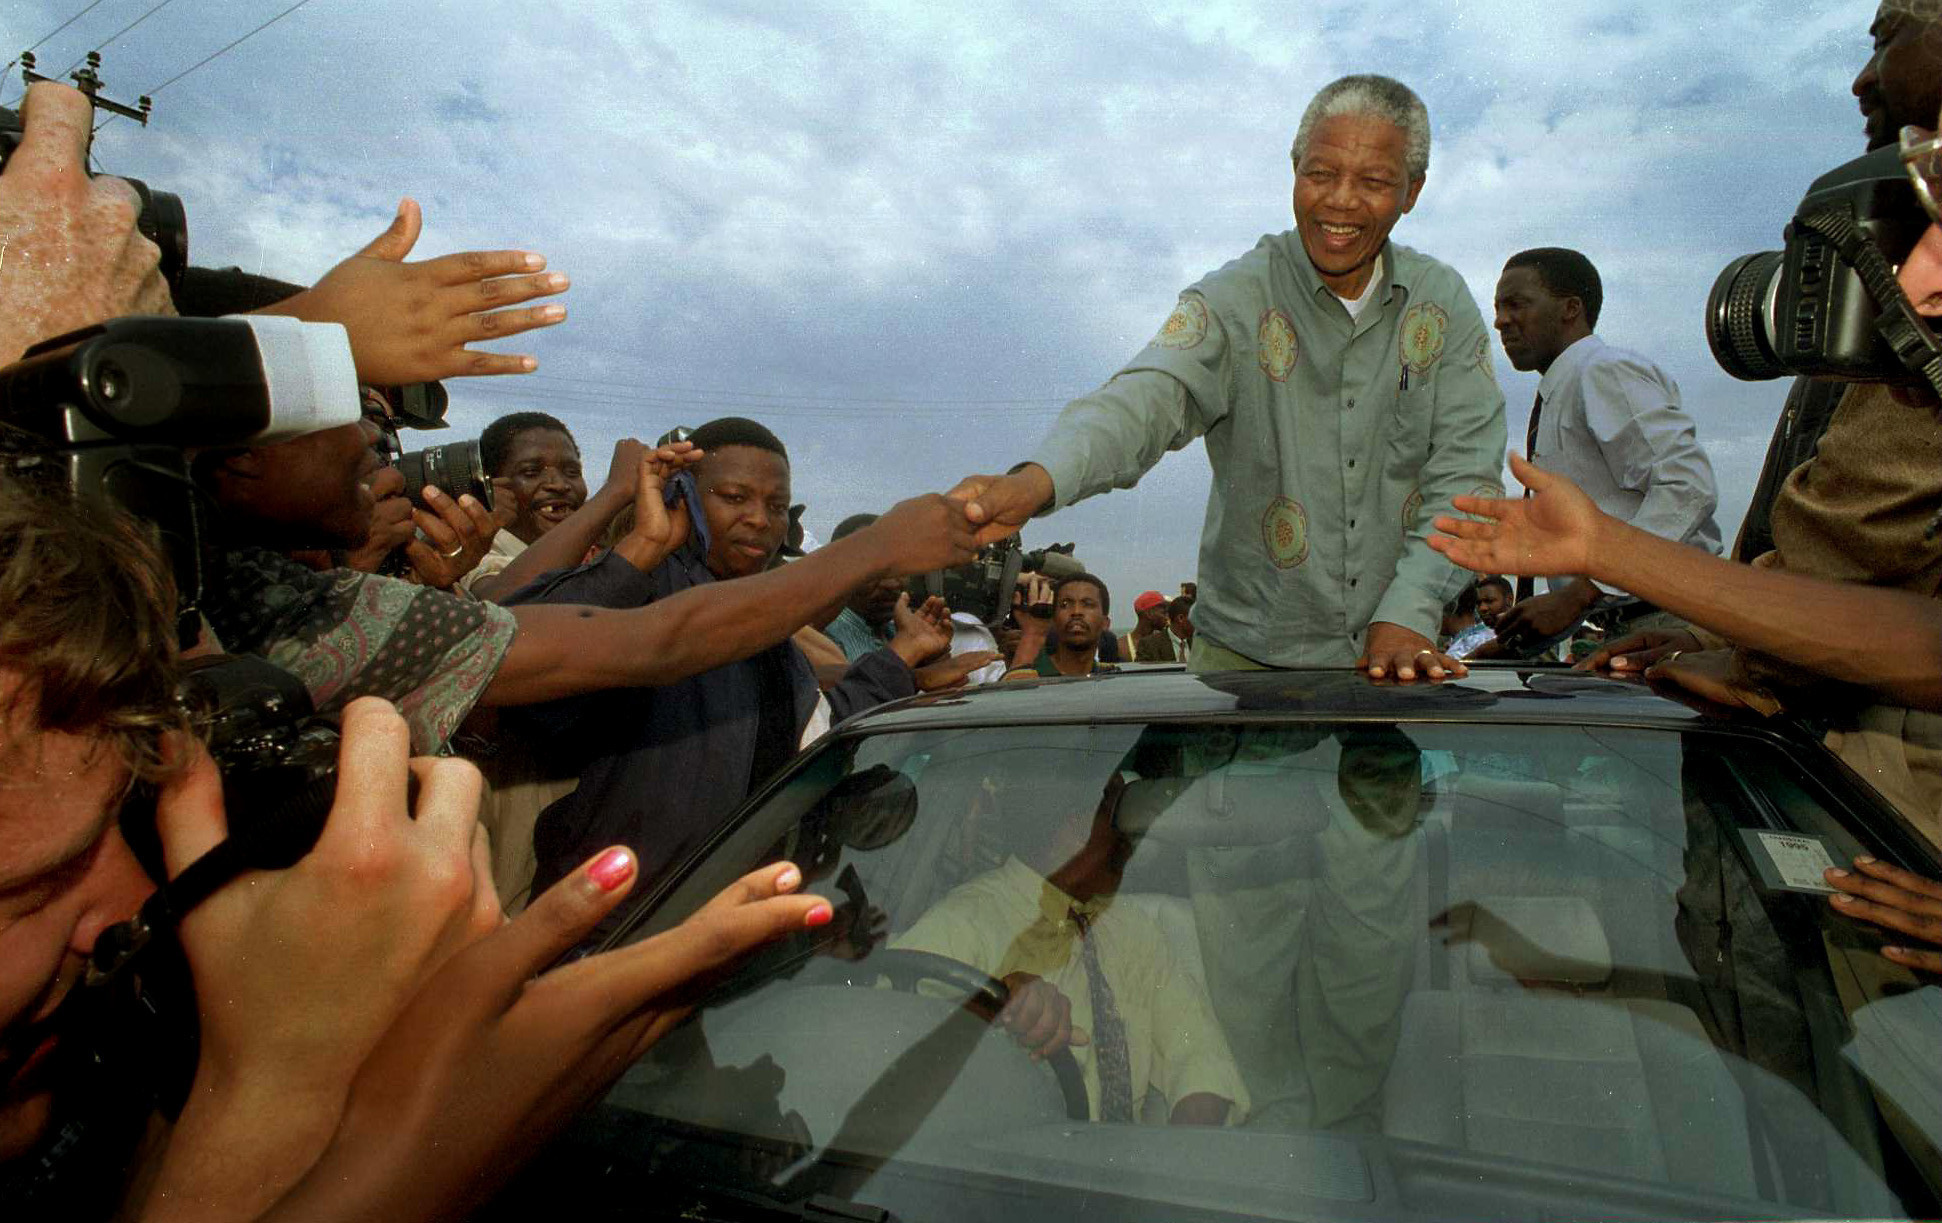 Nelson Mandela is swarmed in Lamontville township during his presidential bid in 1994, when South Africa held its first multiracial democratic elections and the ANC swept to power.